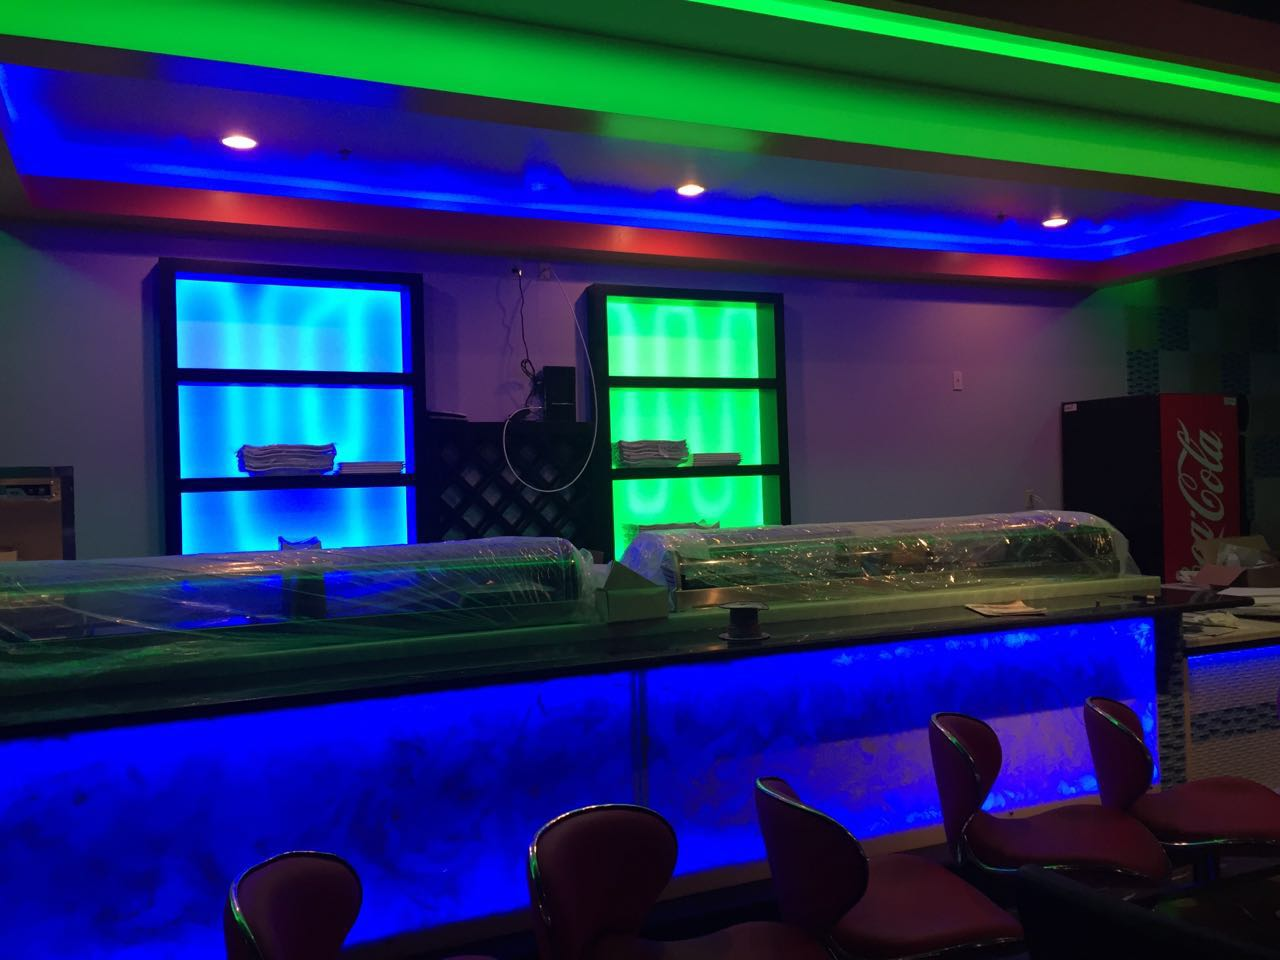 Seishin Restaurant Lighting Using 5050 Rgb Led Strip